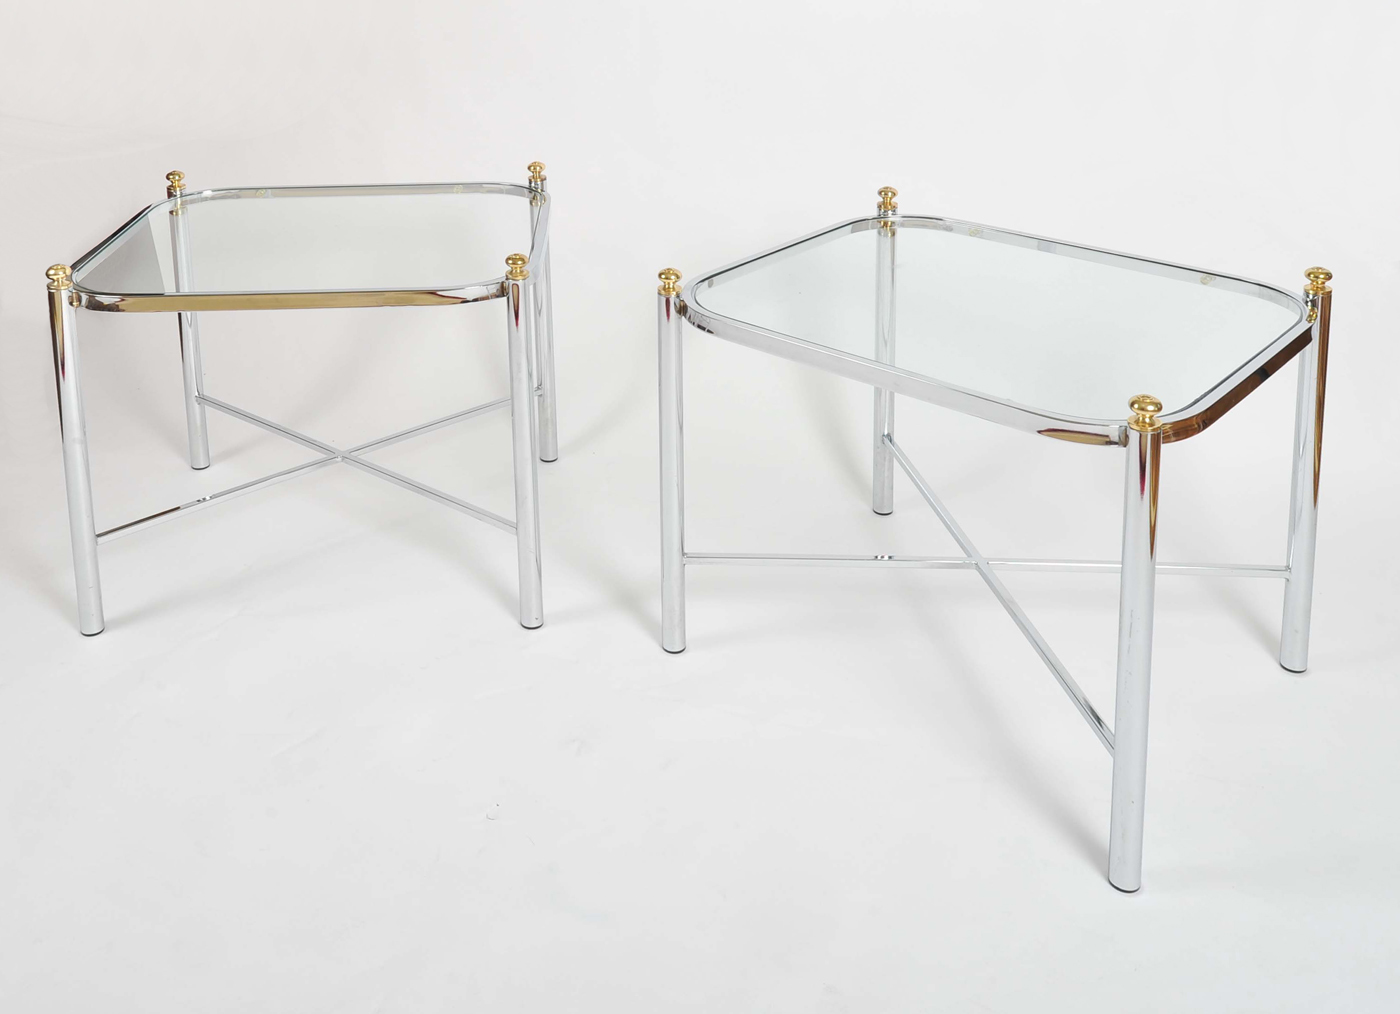 Valerie Wade Ft578 Pair 1970S Chrome Brass Sides Tables02